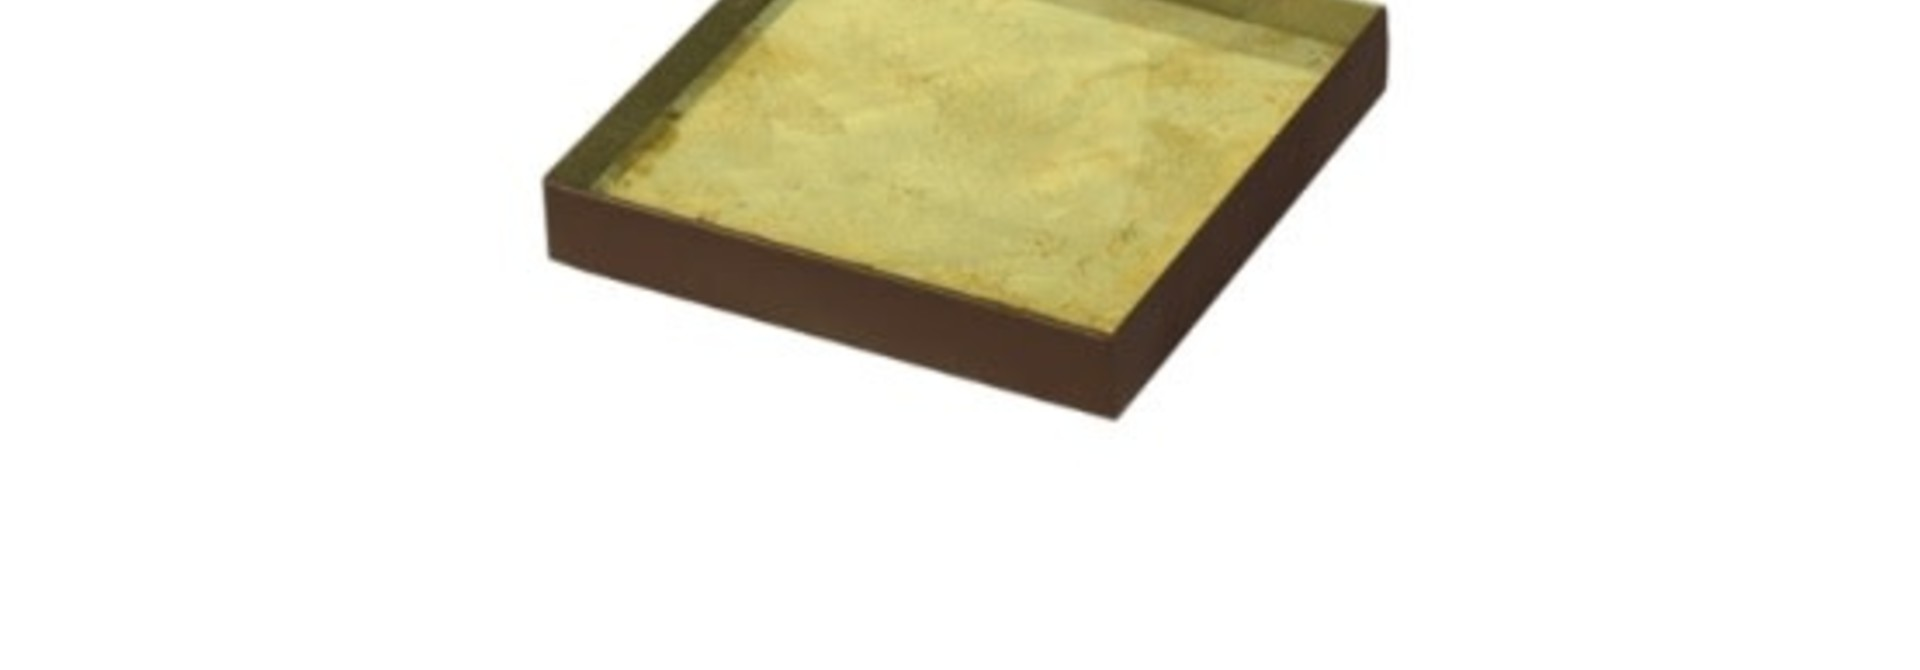 Gold leaf glass tray square